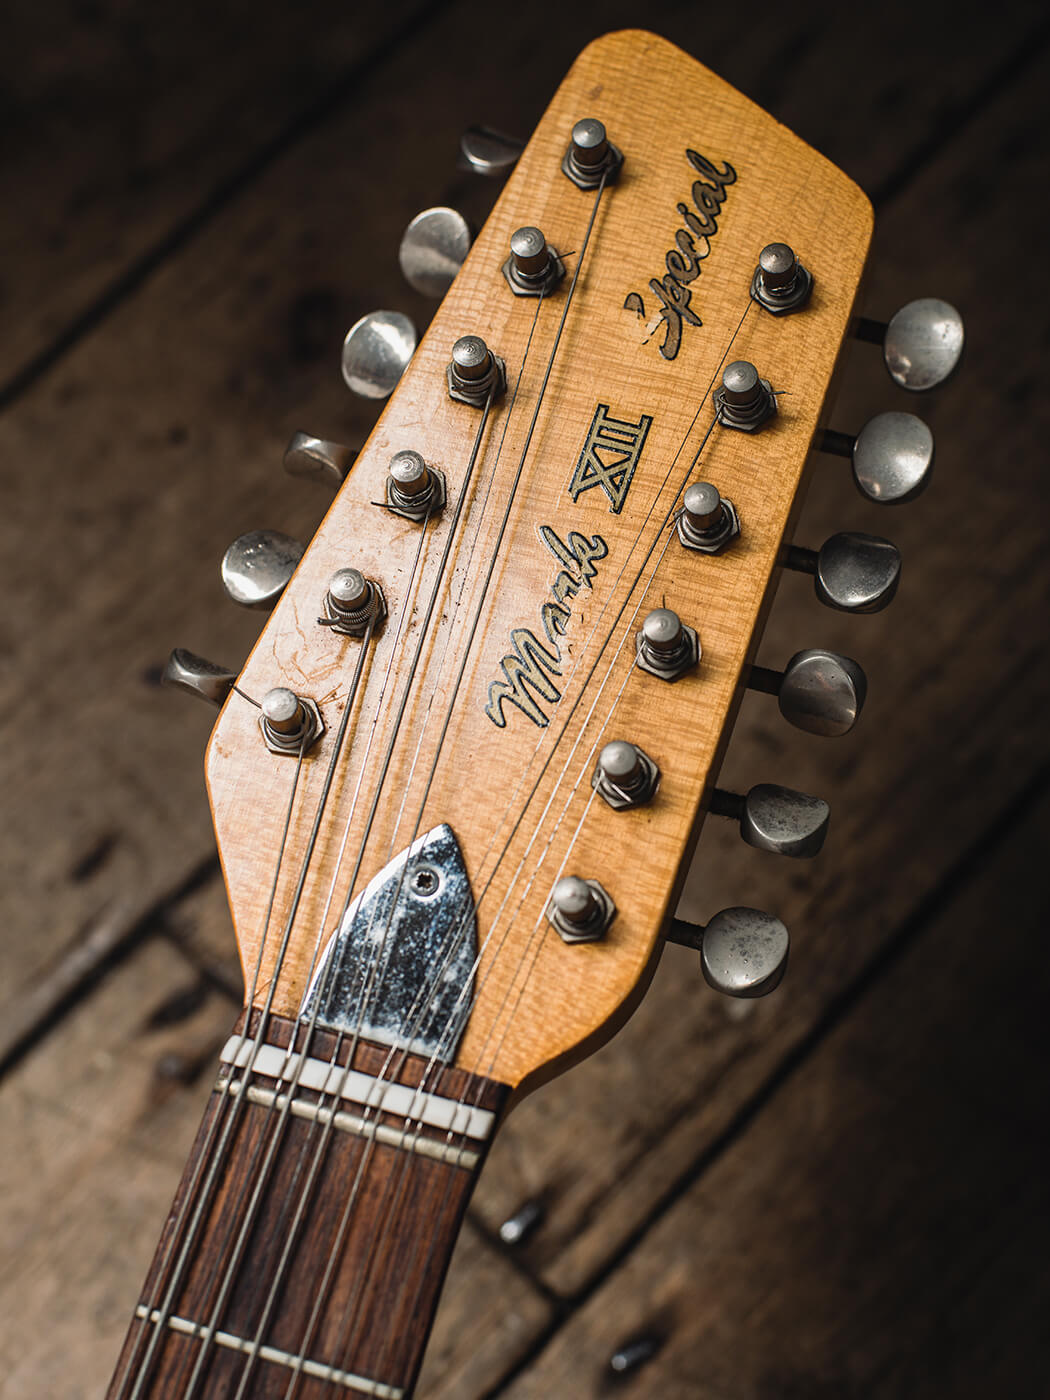 Rory Gallagher's 1967 Vox Mark XII